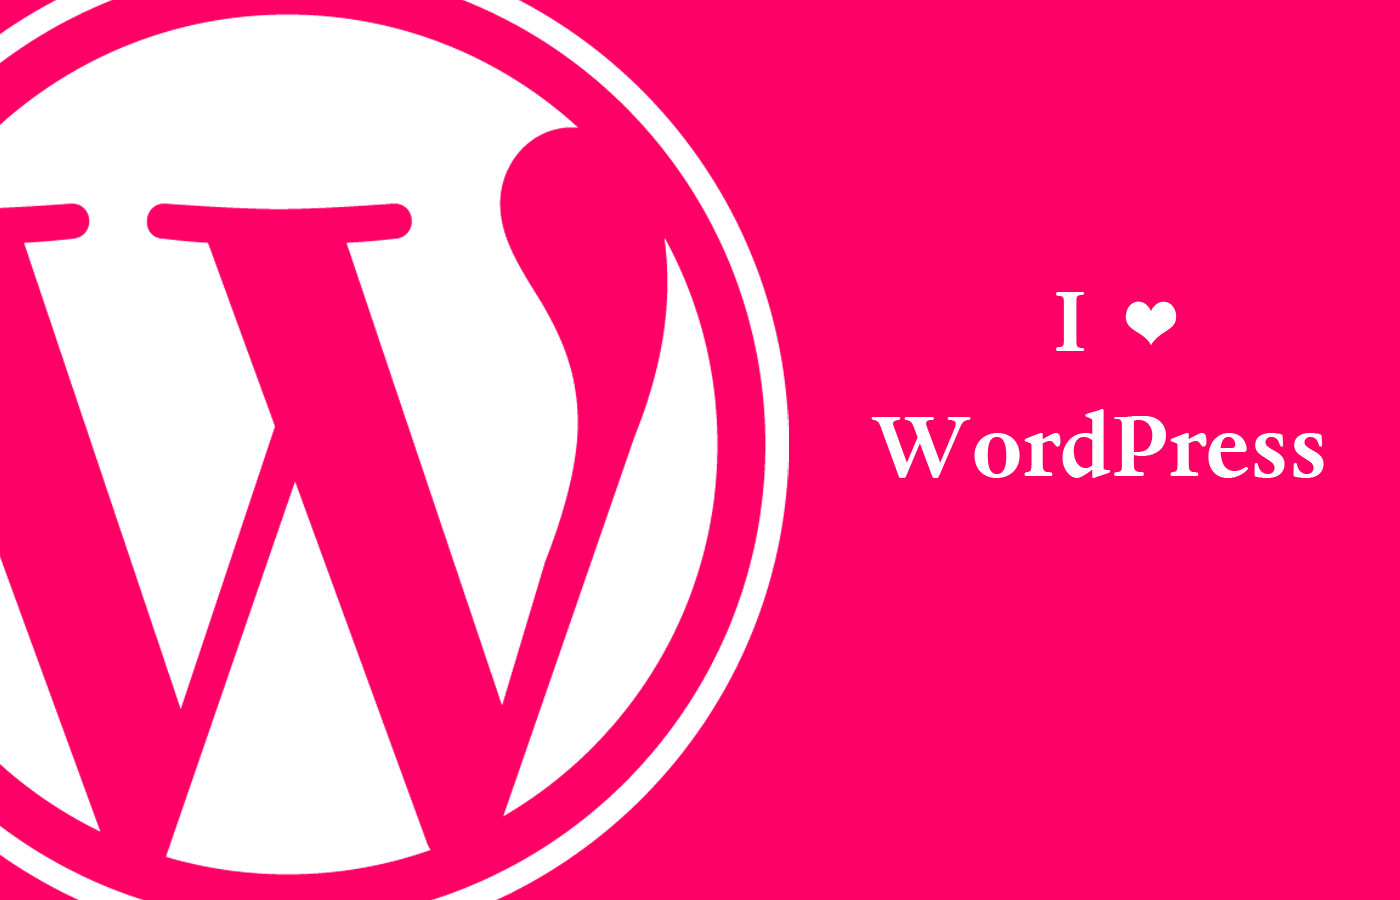 I-love-WordPress.jpg (1400×900)